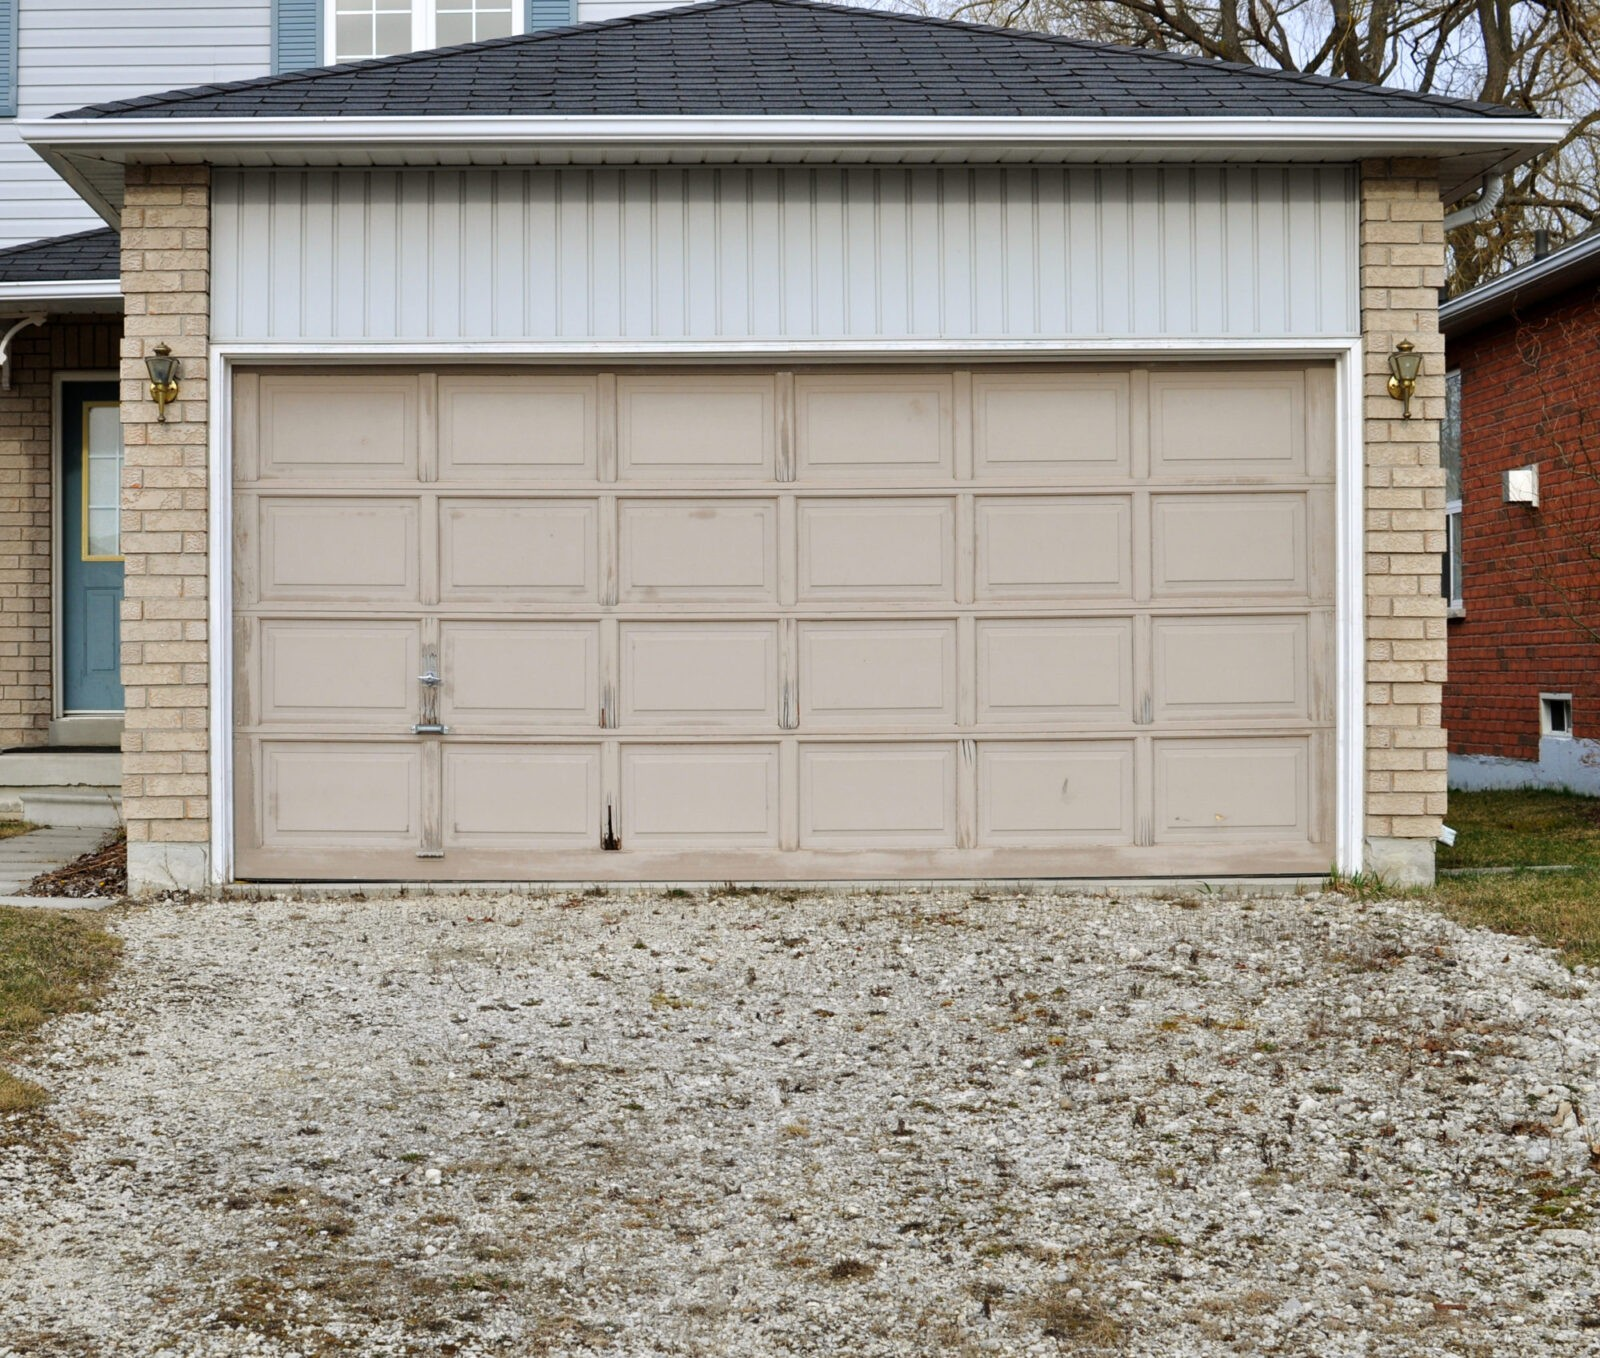 What Does Garage Mean: The Dangers Of An Old Garage Door